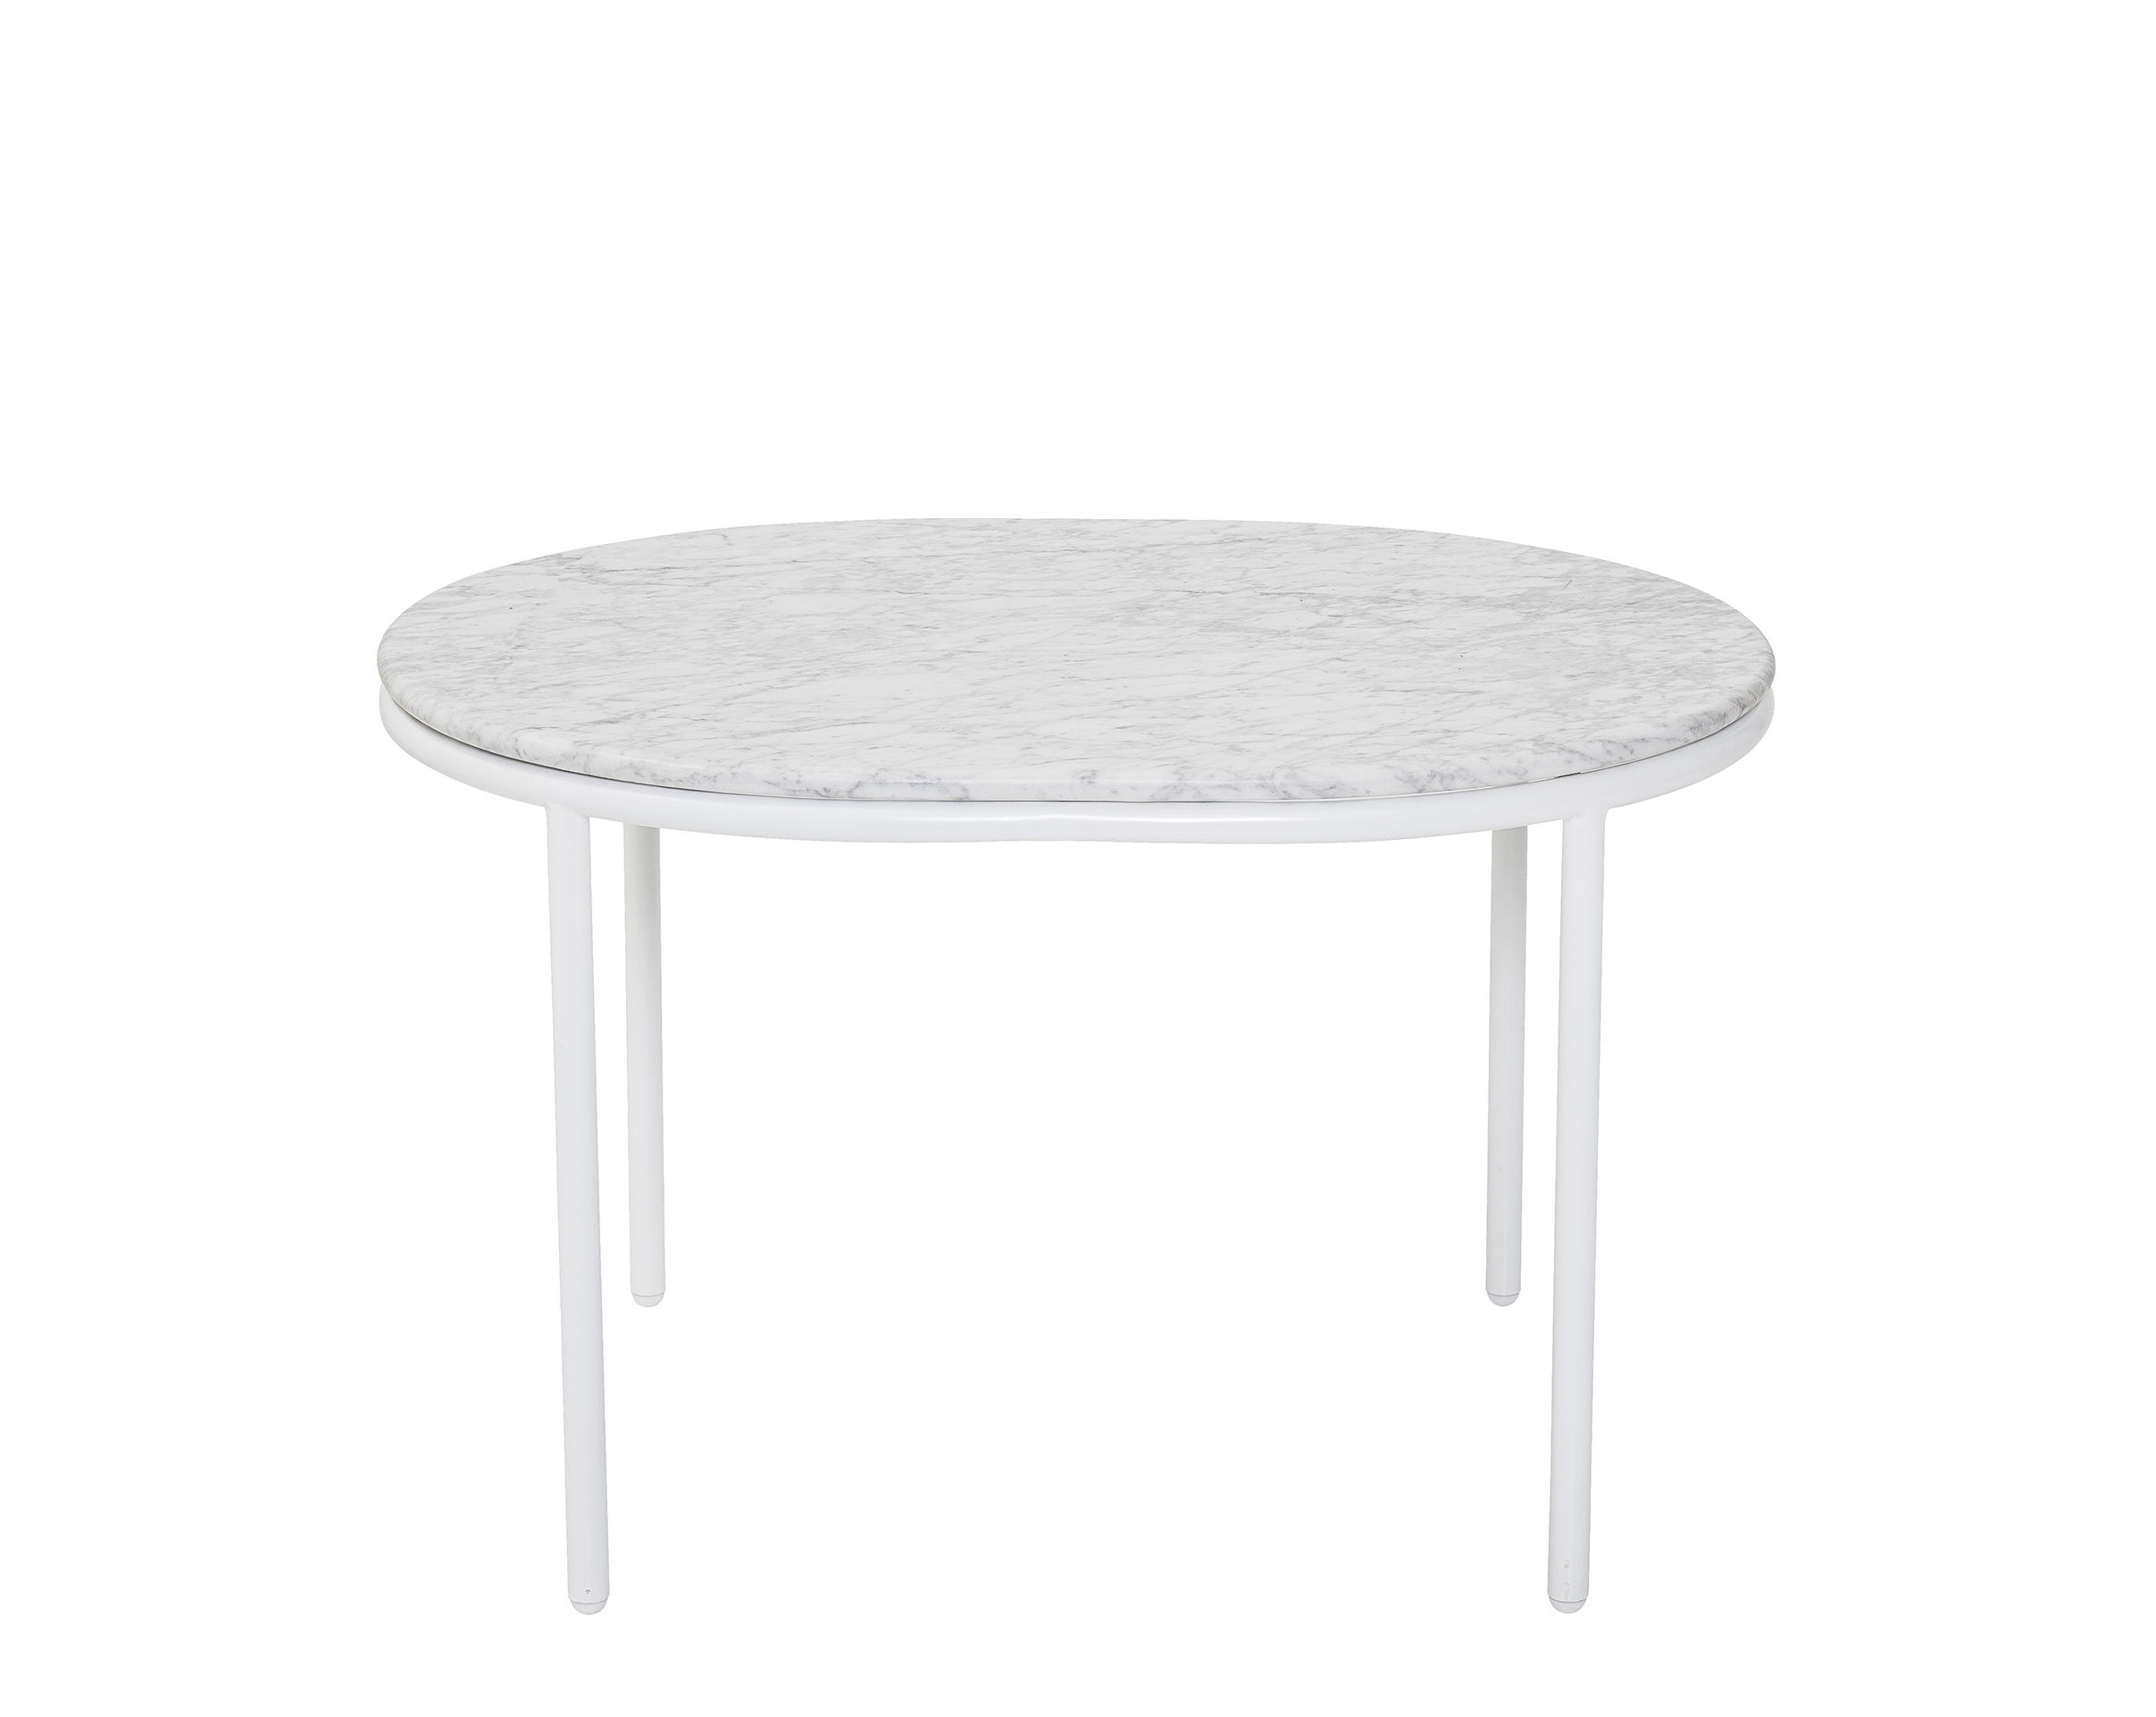 Furniture - Coffee Tables - Coffee table - / Marble - 70 x 55 cm by Bloomingville - White marble / White base - Lacquered iron, Marble